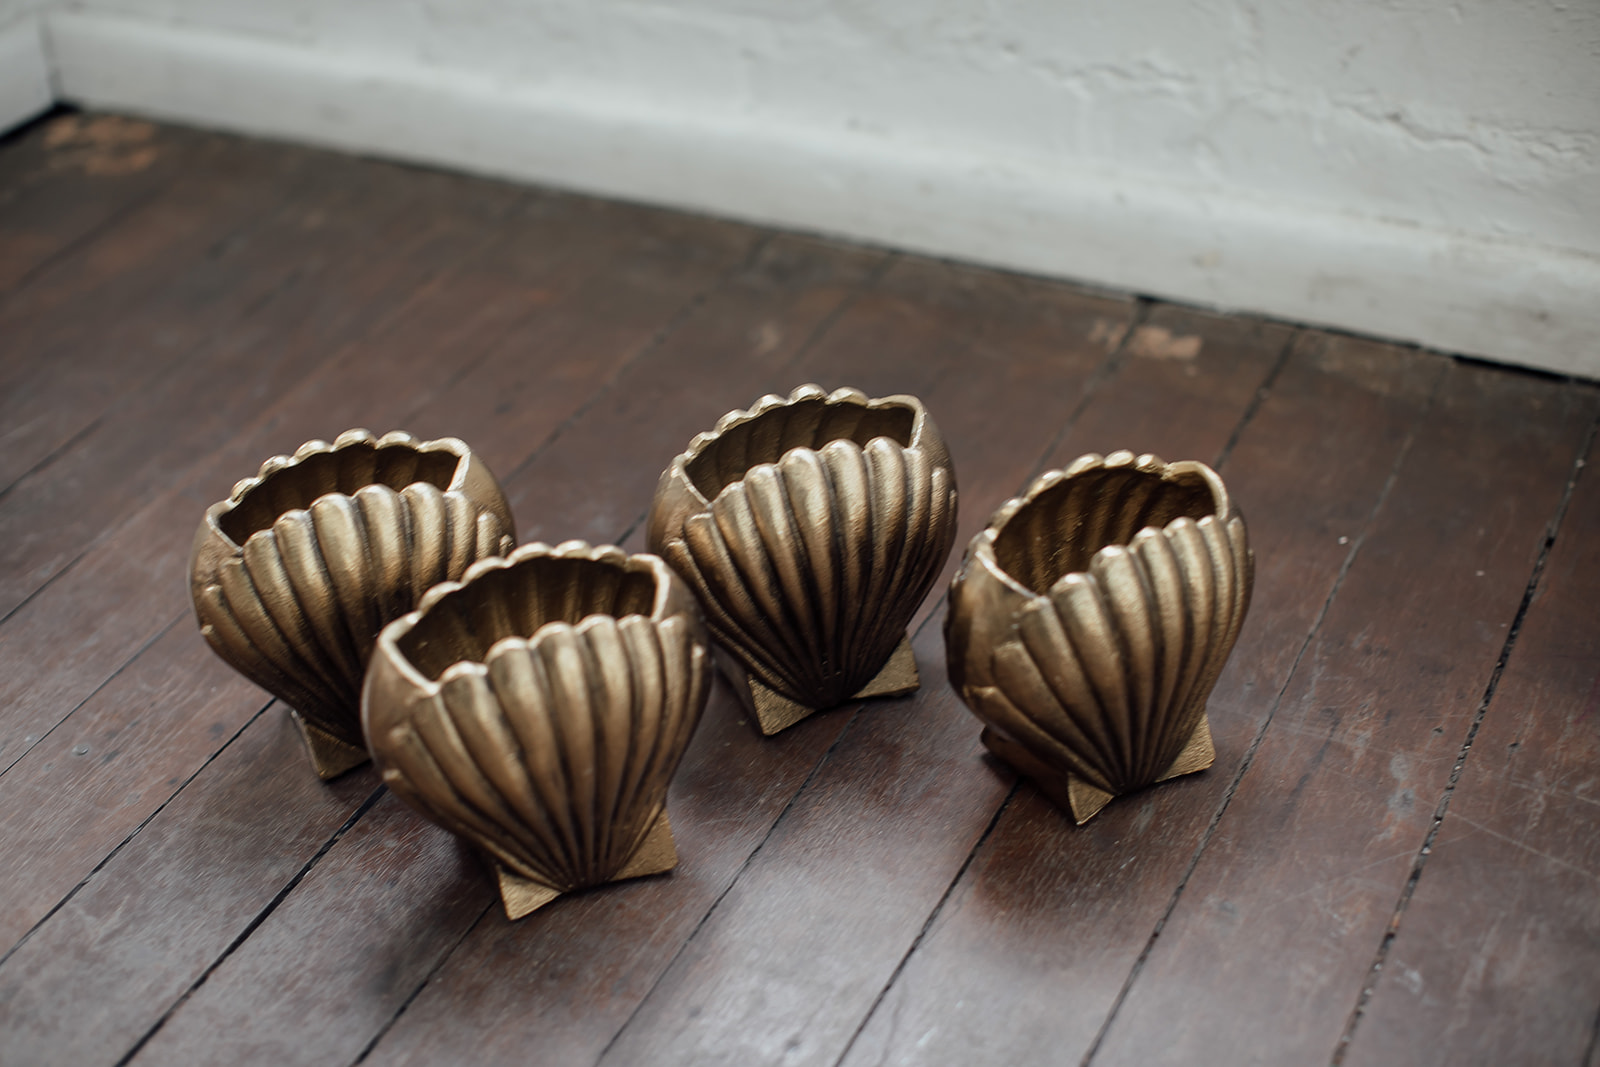 melted shell vases - $15.00 each or hired set of 6 x pieces for $72.00